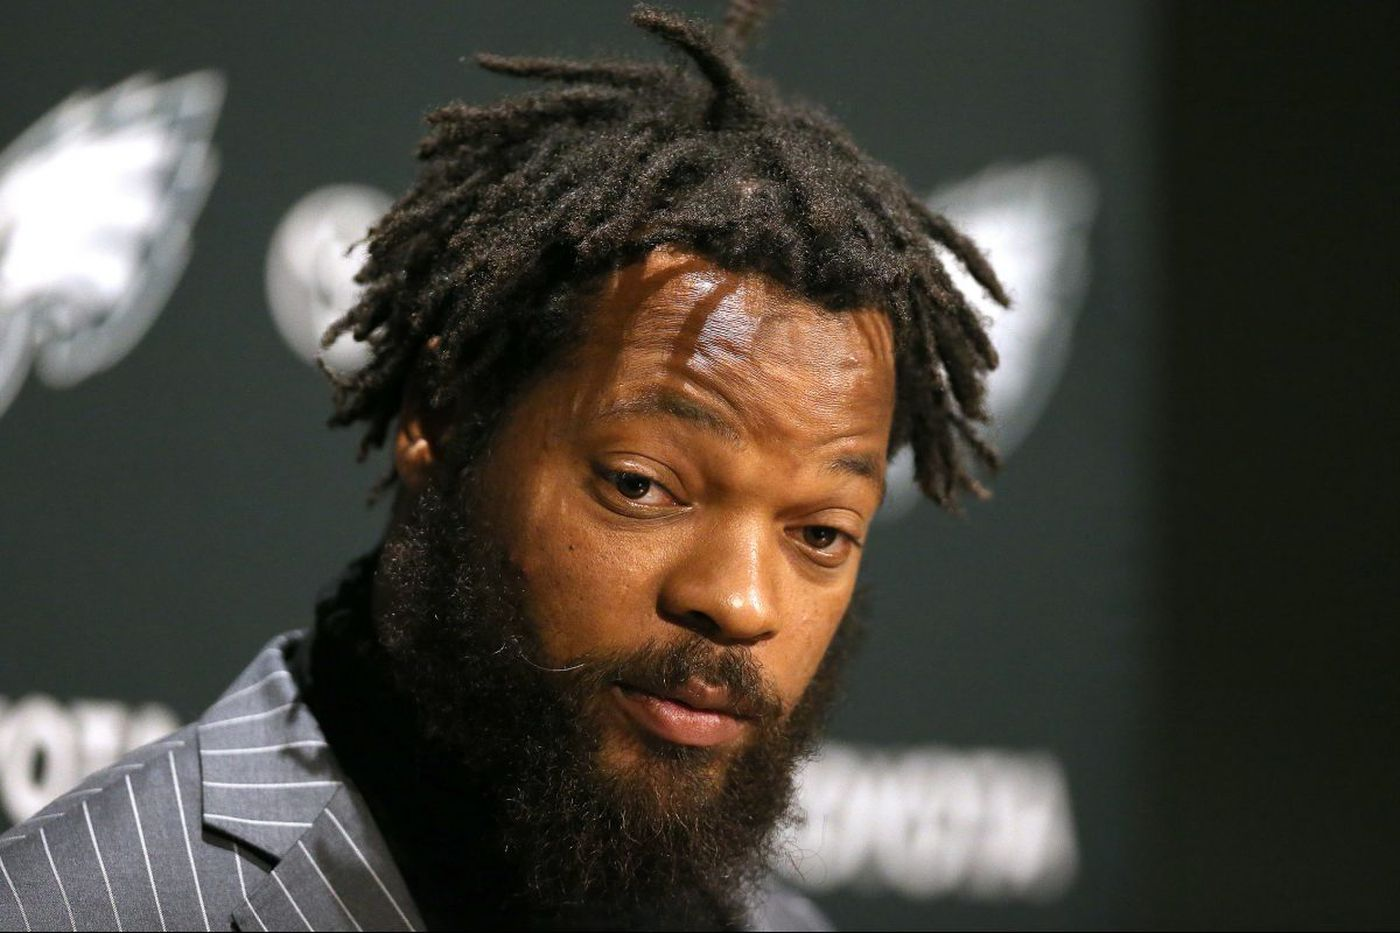 Michael Bennett says he's ready to help lead Eagles' charge to another Super Bowl